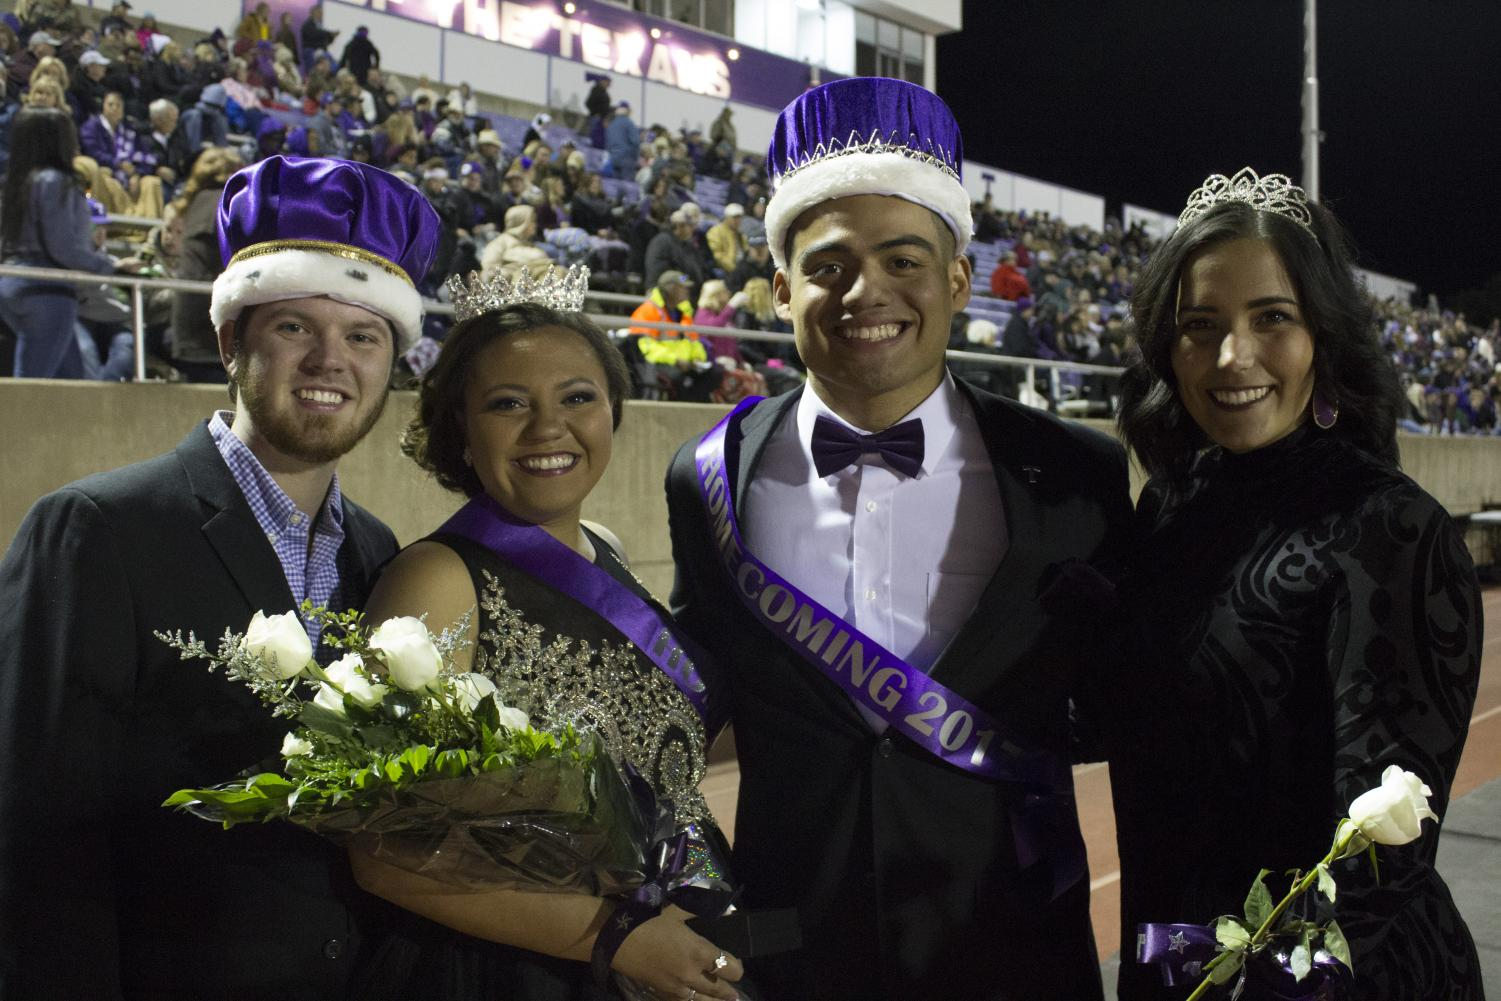 Meet your 2017 Homecoming King and Queen: Art Hernandez and Madison Minor